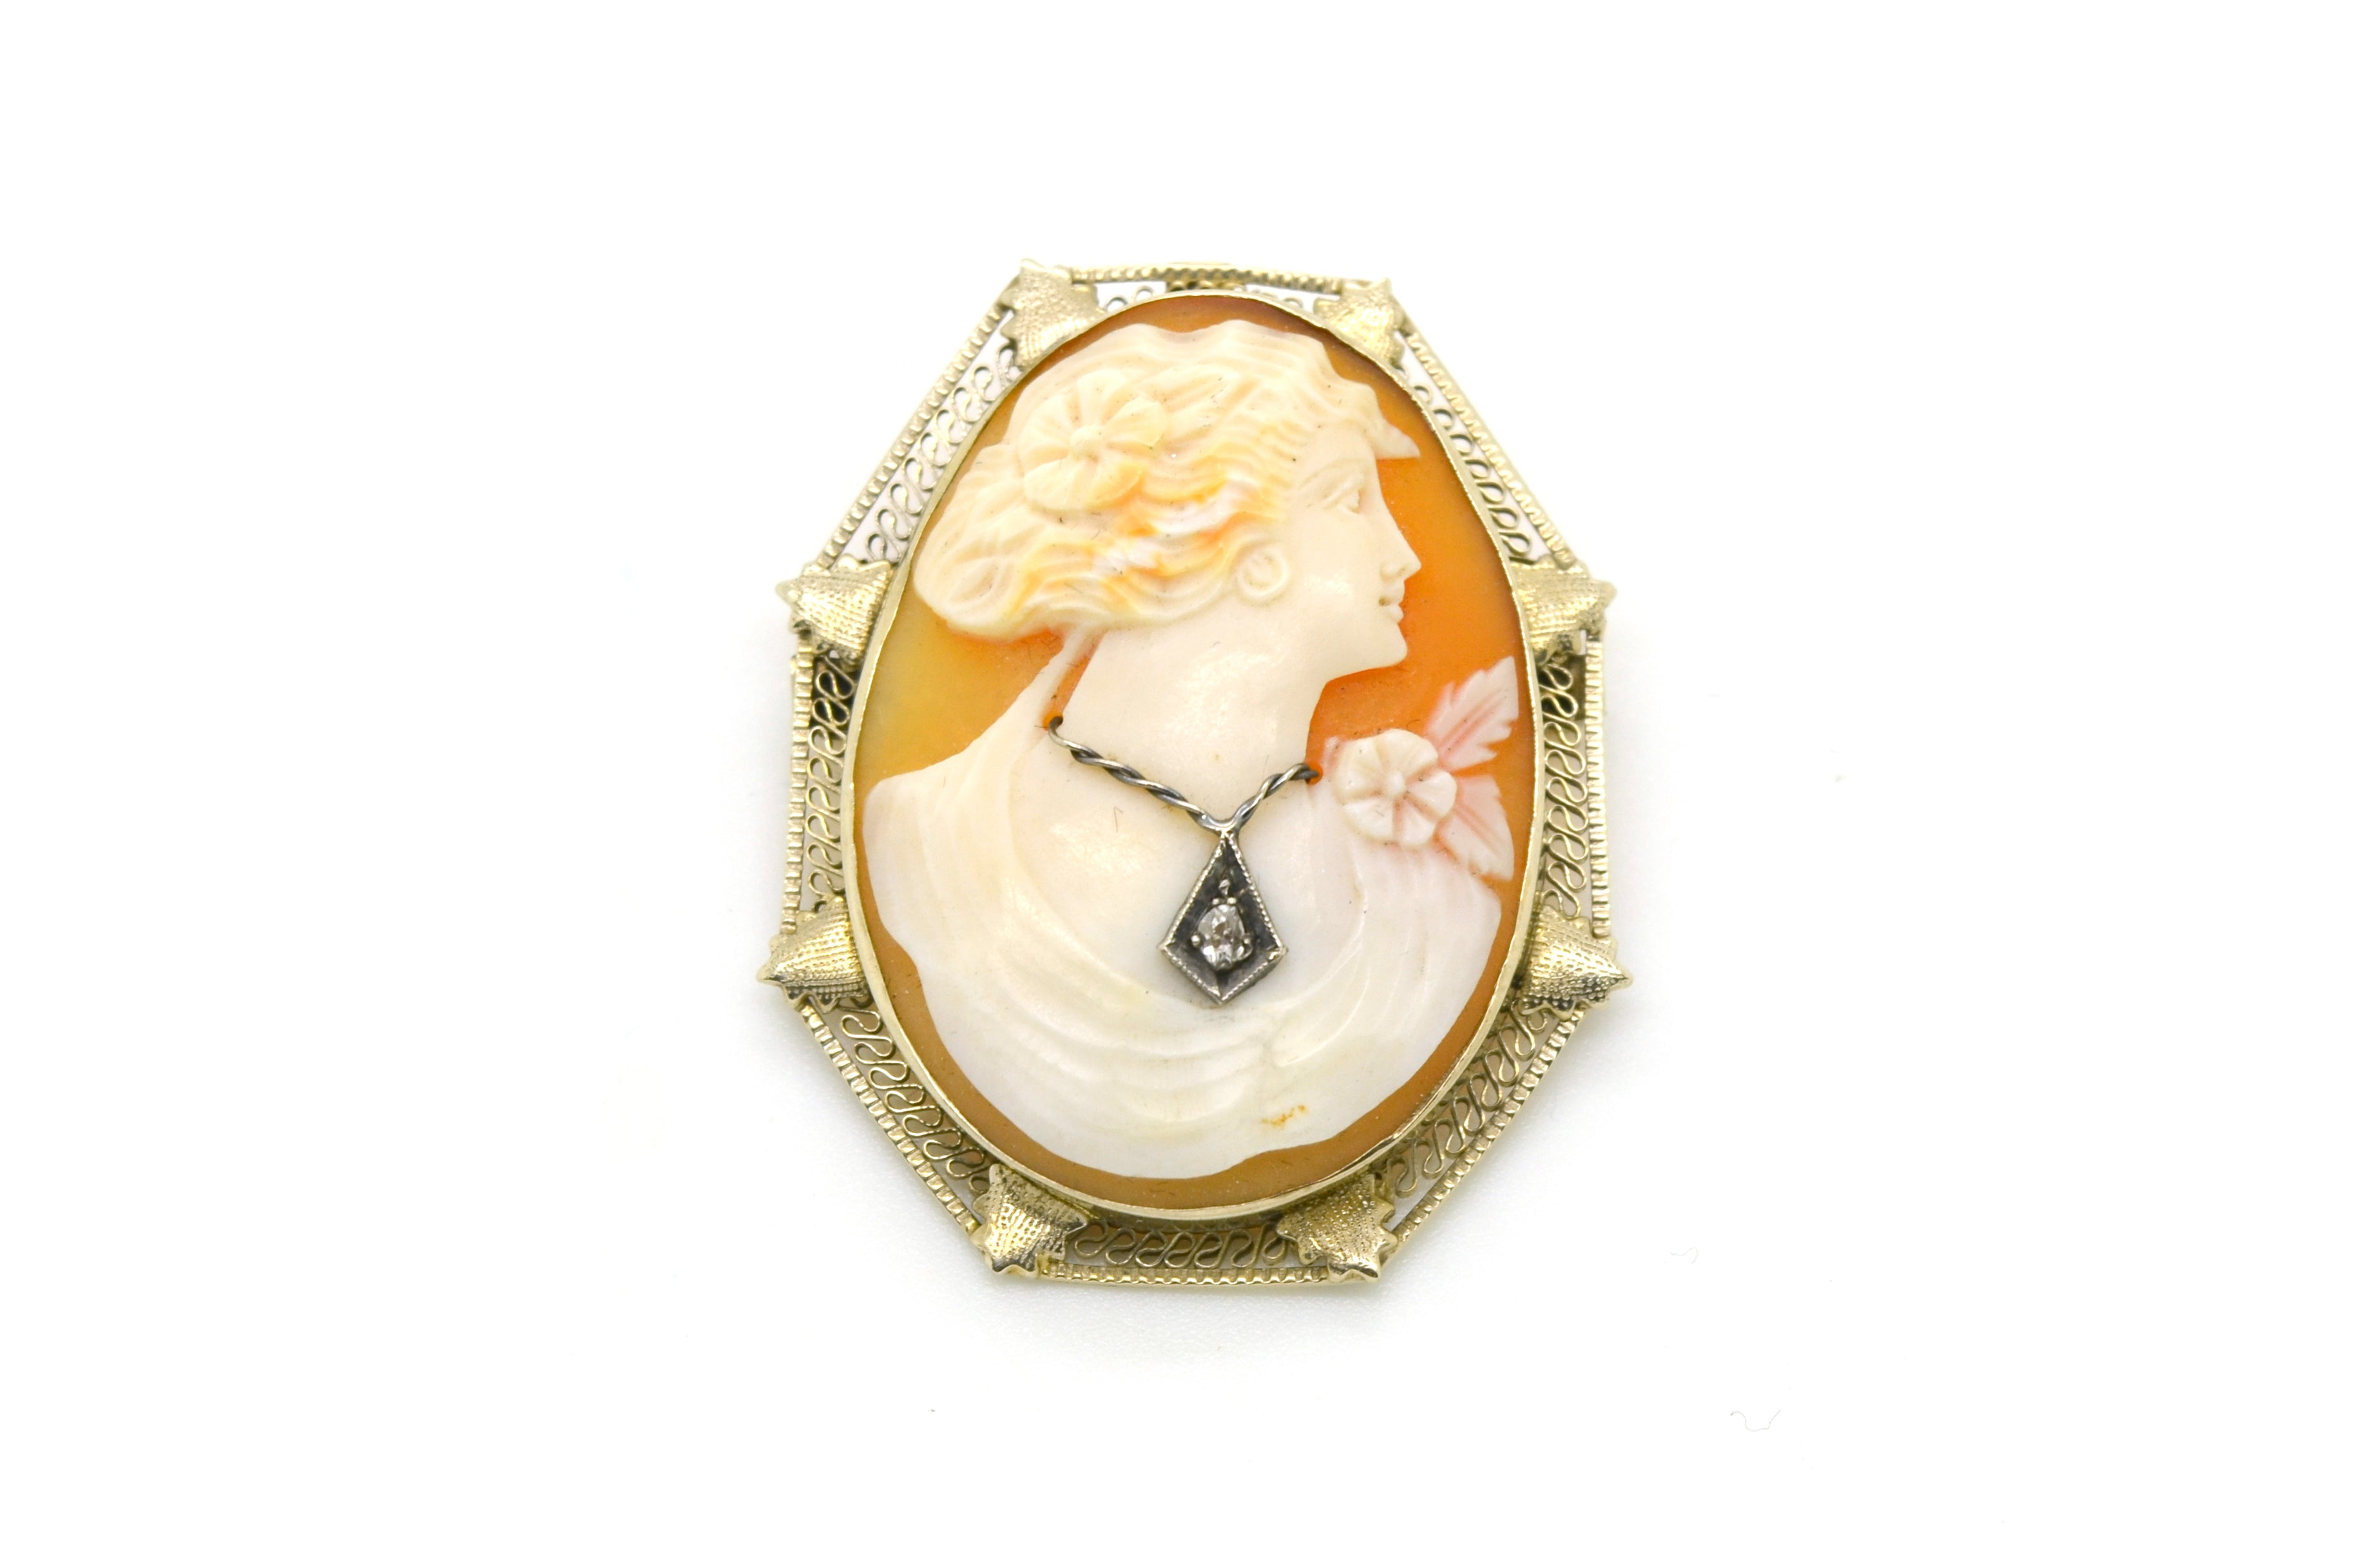 Vintage 14k White Gold Cameo Pendant Brooch with Diamond - .03 ct. - 40 by 32 mm